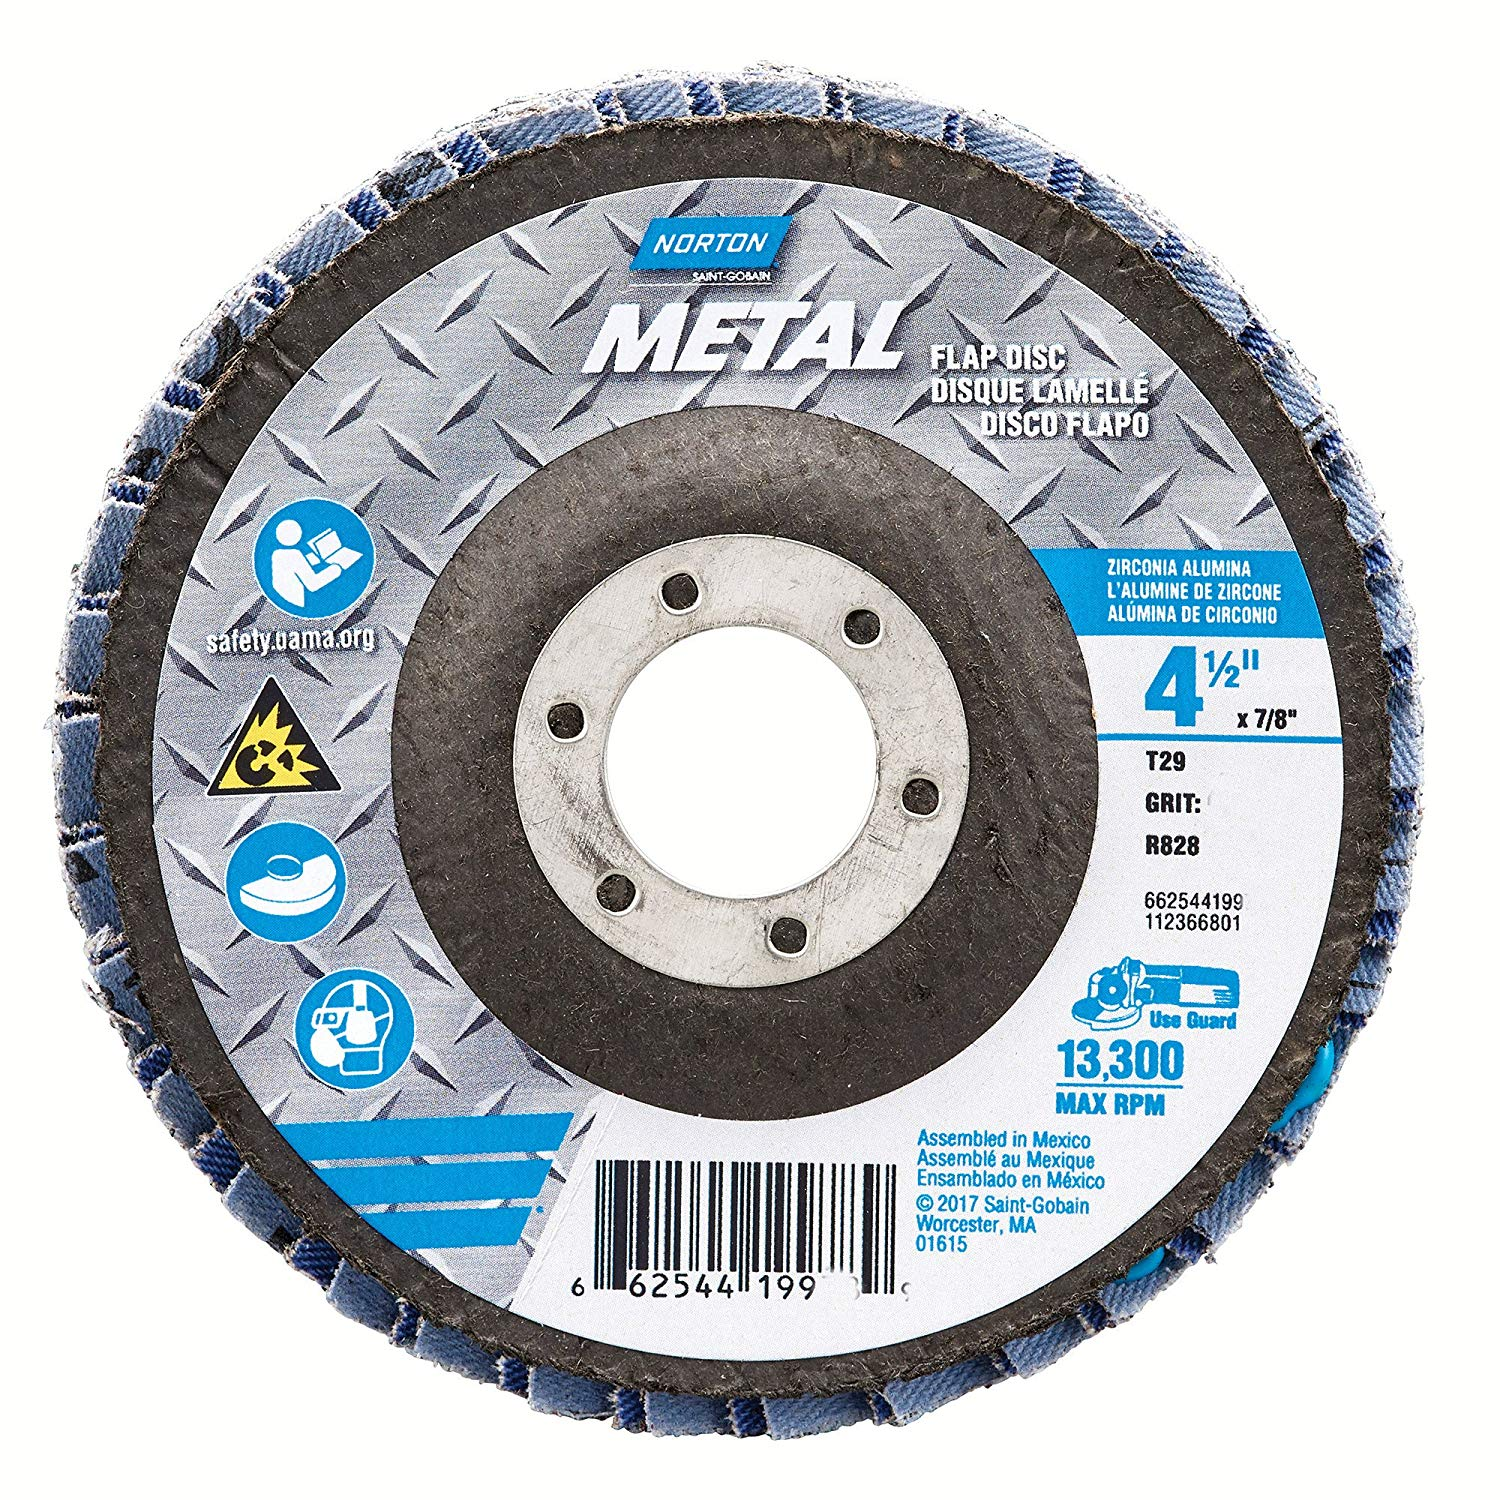 Merit Abrasives 481-66254419963 Type 29 Metal Zirconia Alumina Powerflex Flap Discs, 4.5 in., 36 Grit, 0.88 Arbor